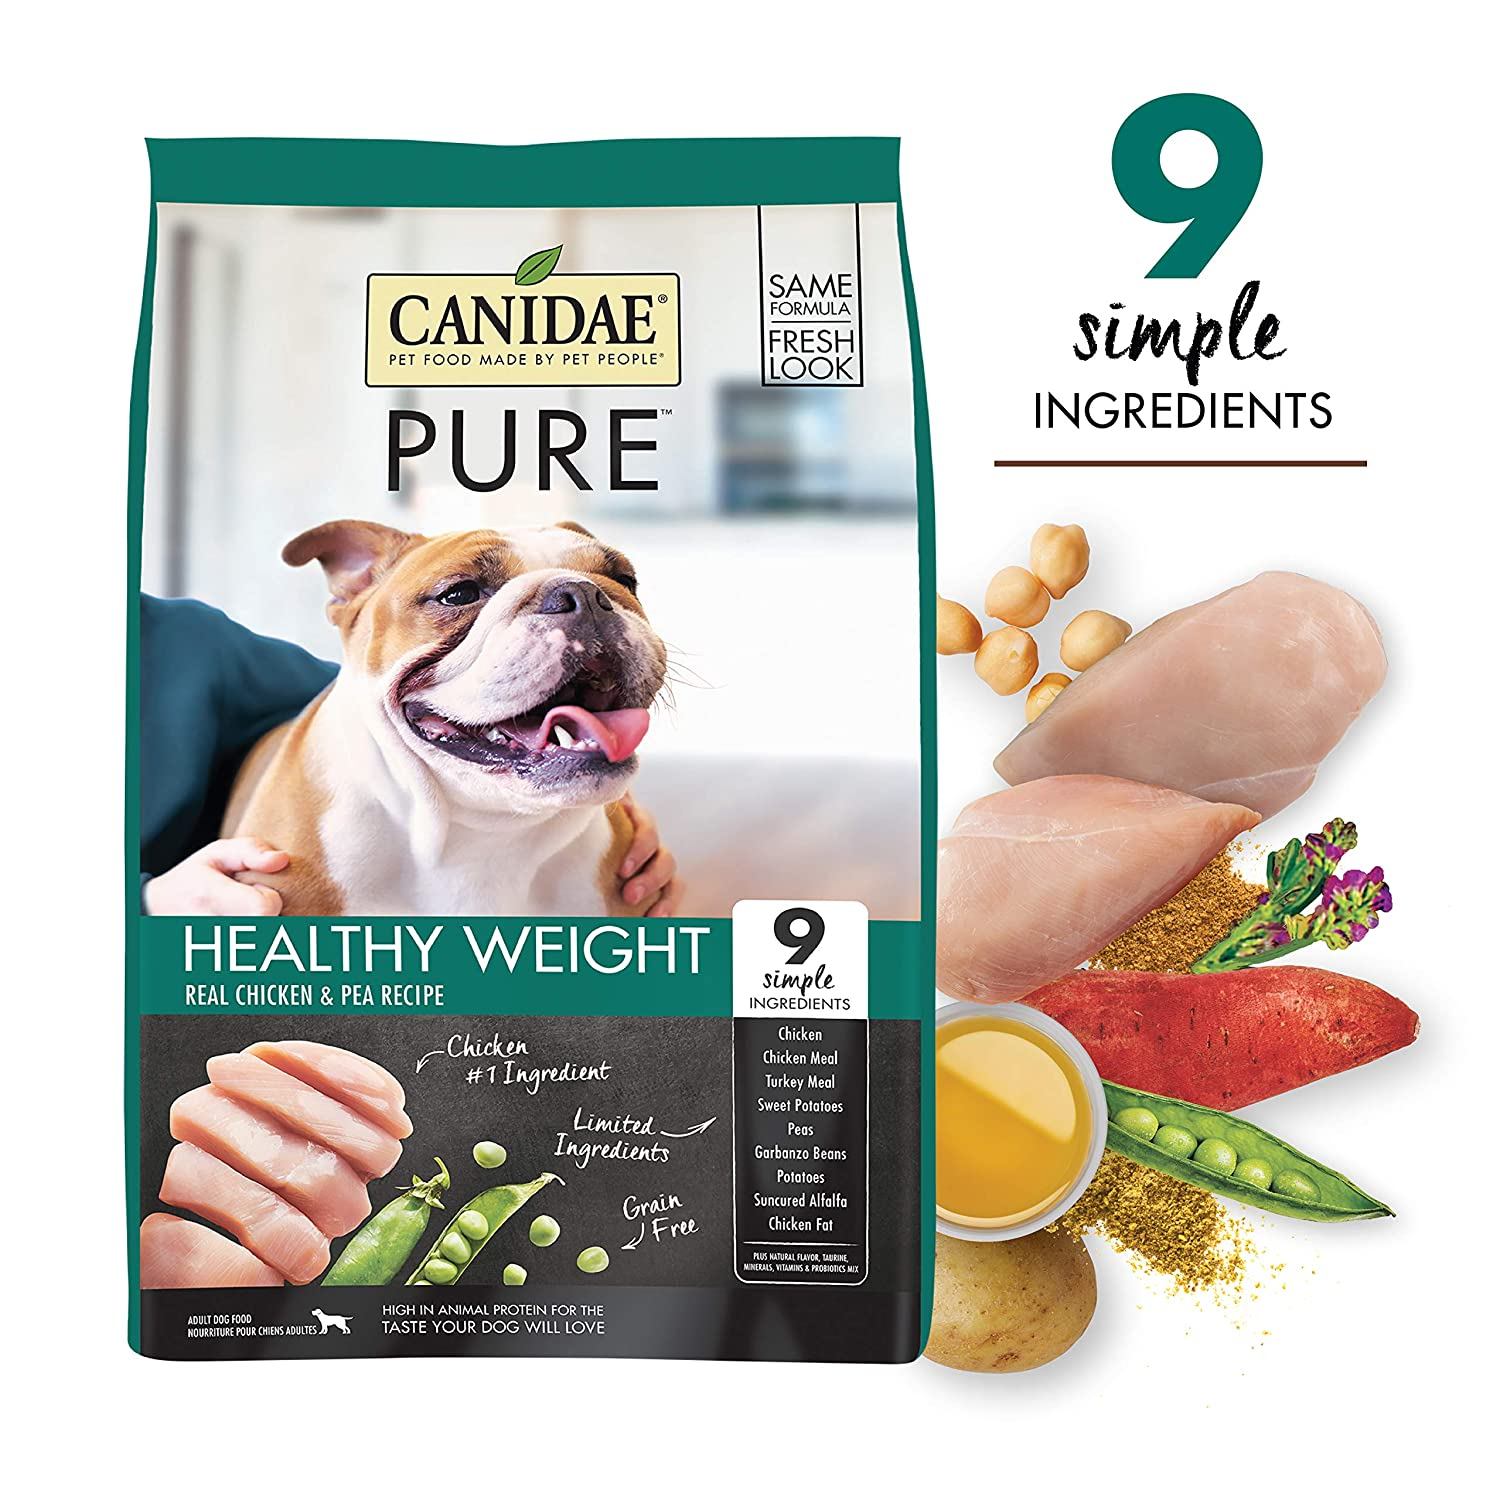 9. CANIDAE Grain-Free PURE Healthy Weight Real Chicken & Pea Recipe Dry Dog Food